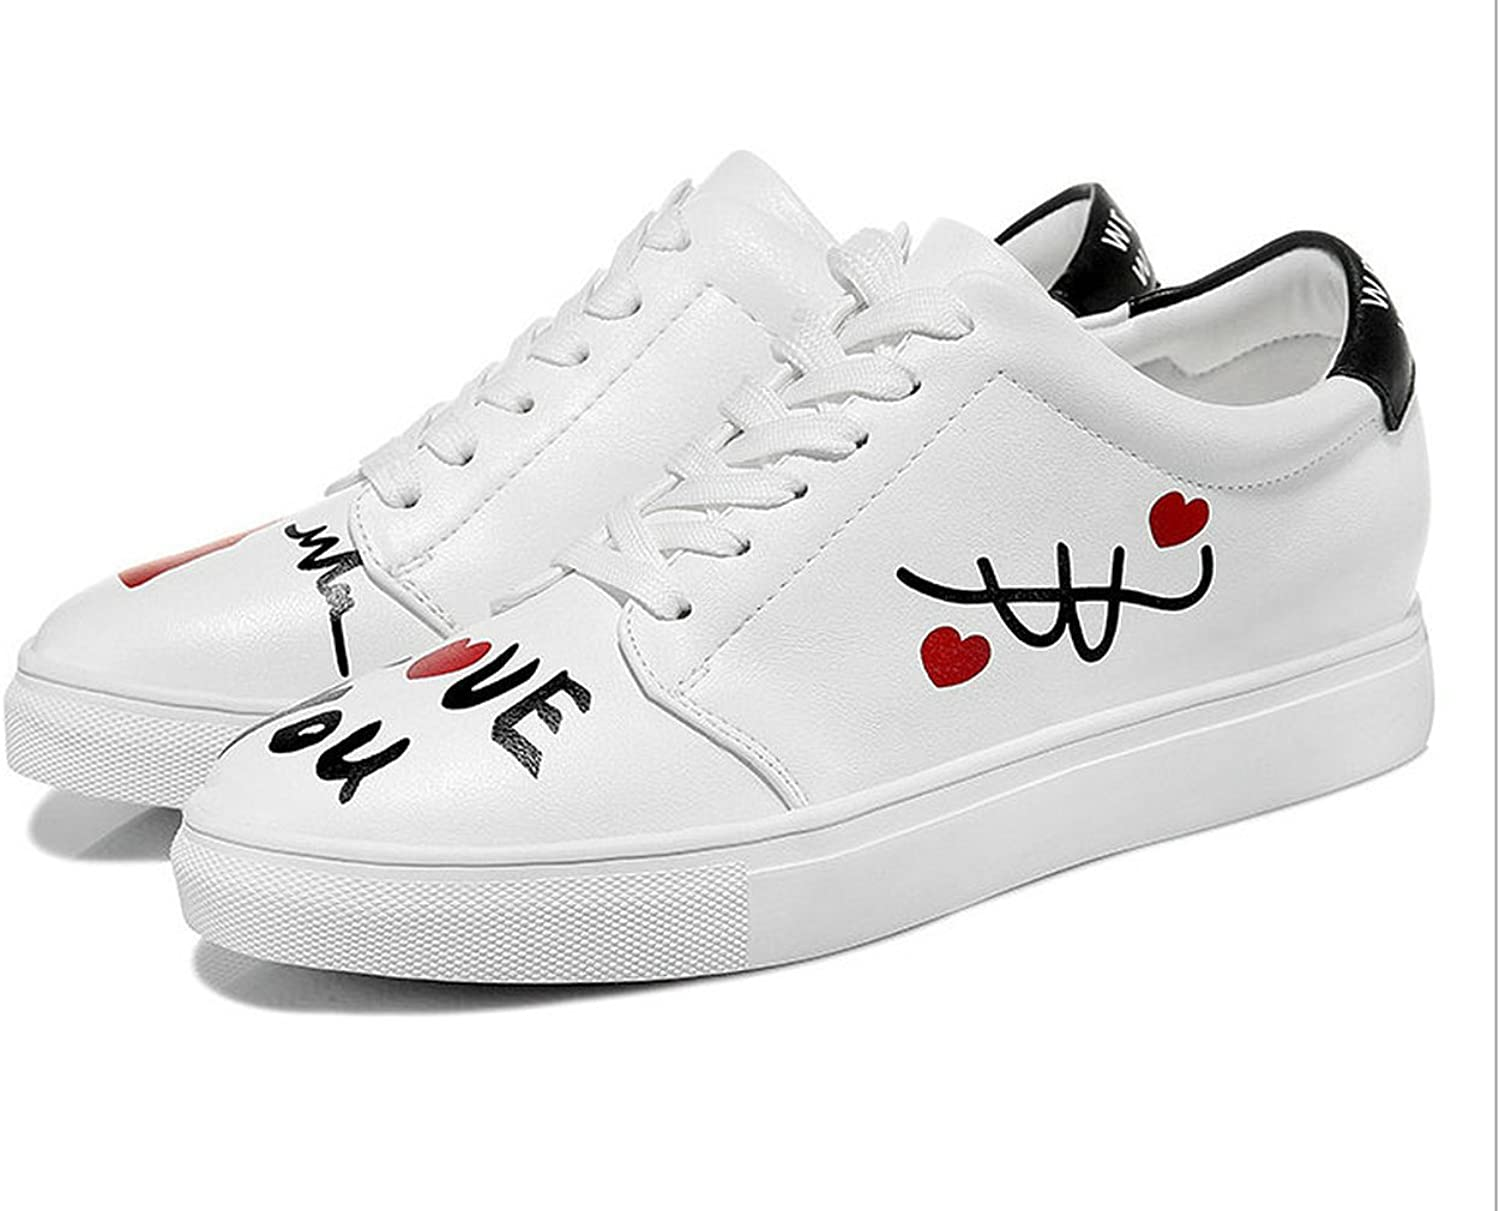 WENDYWU Women's Sneakers shoes Low All White Sport shoes